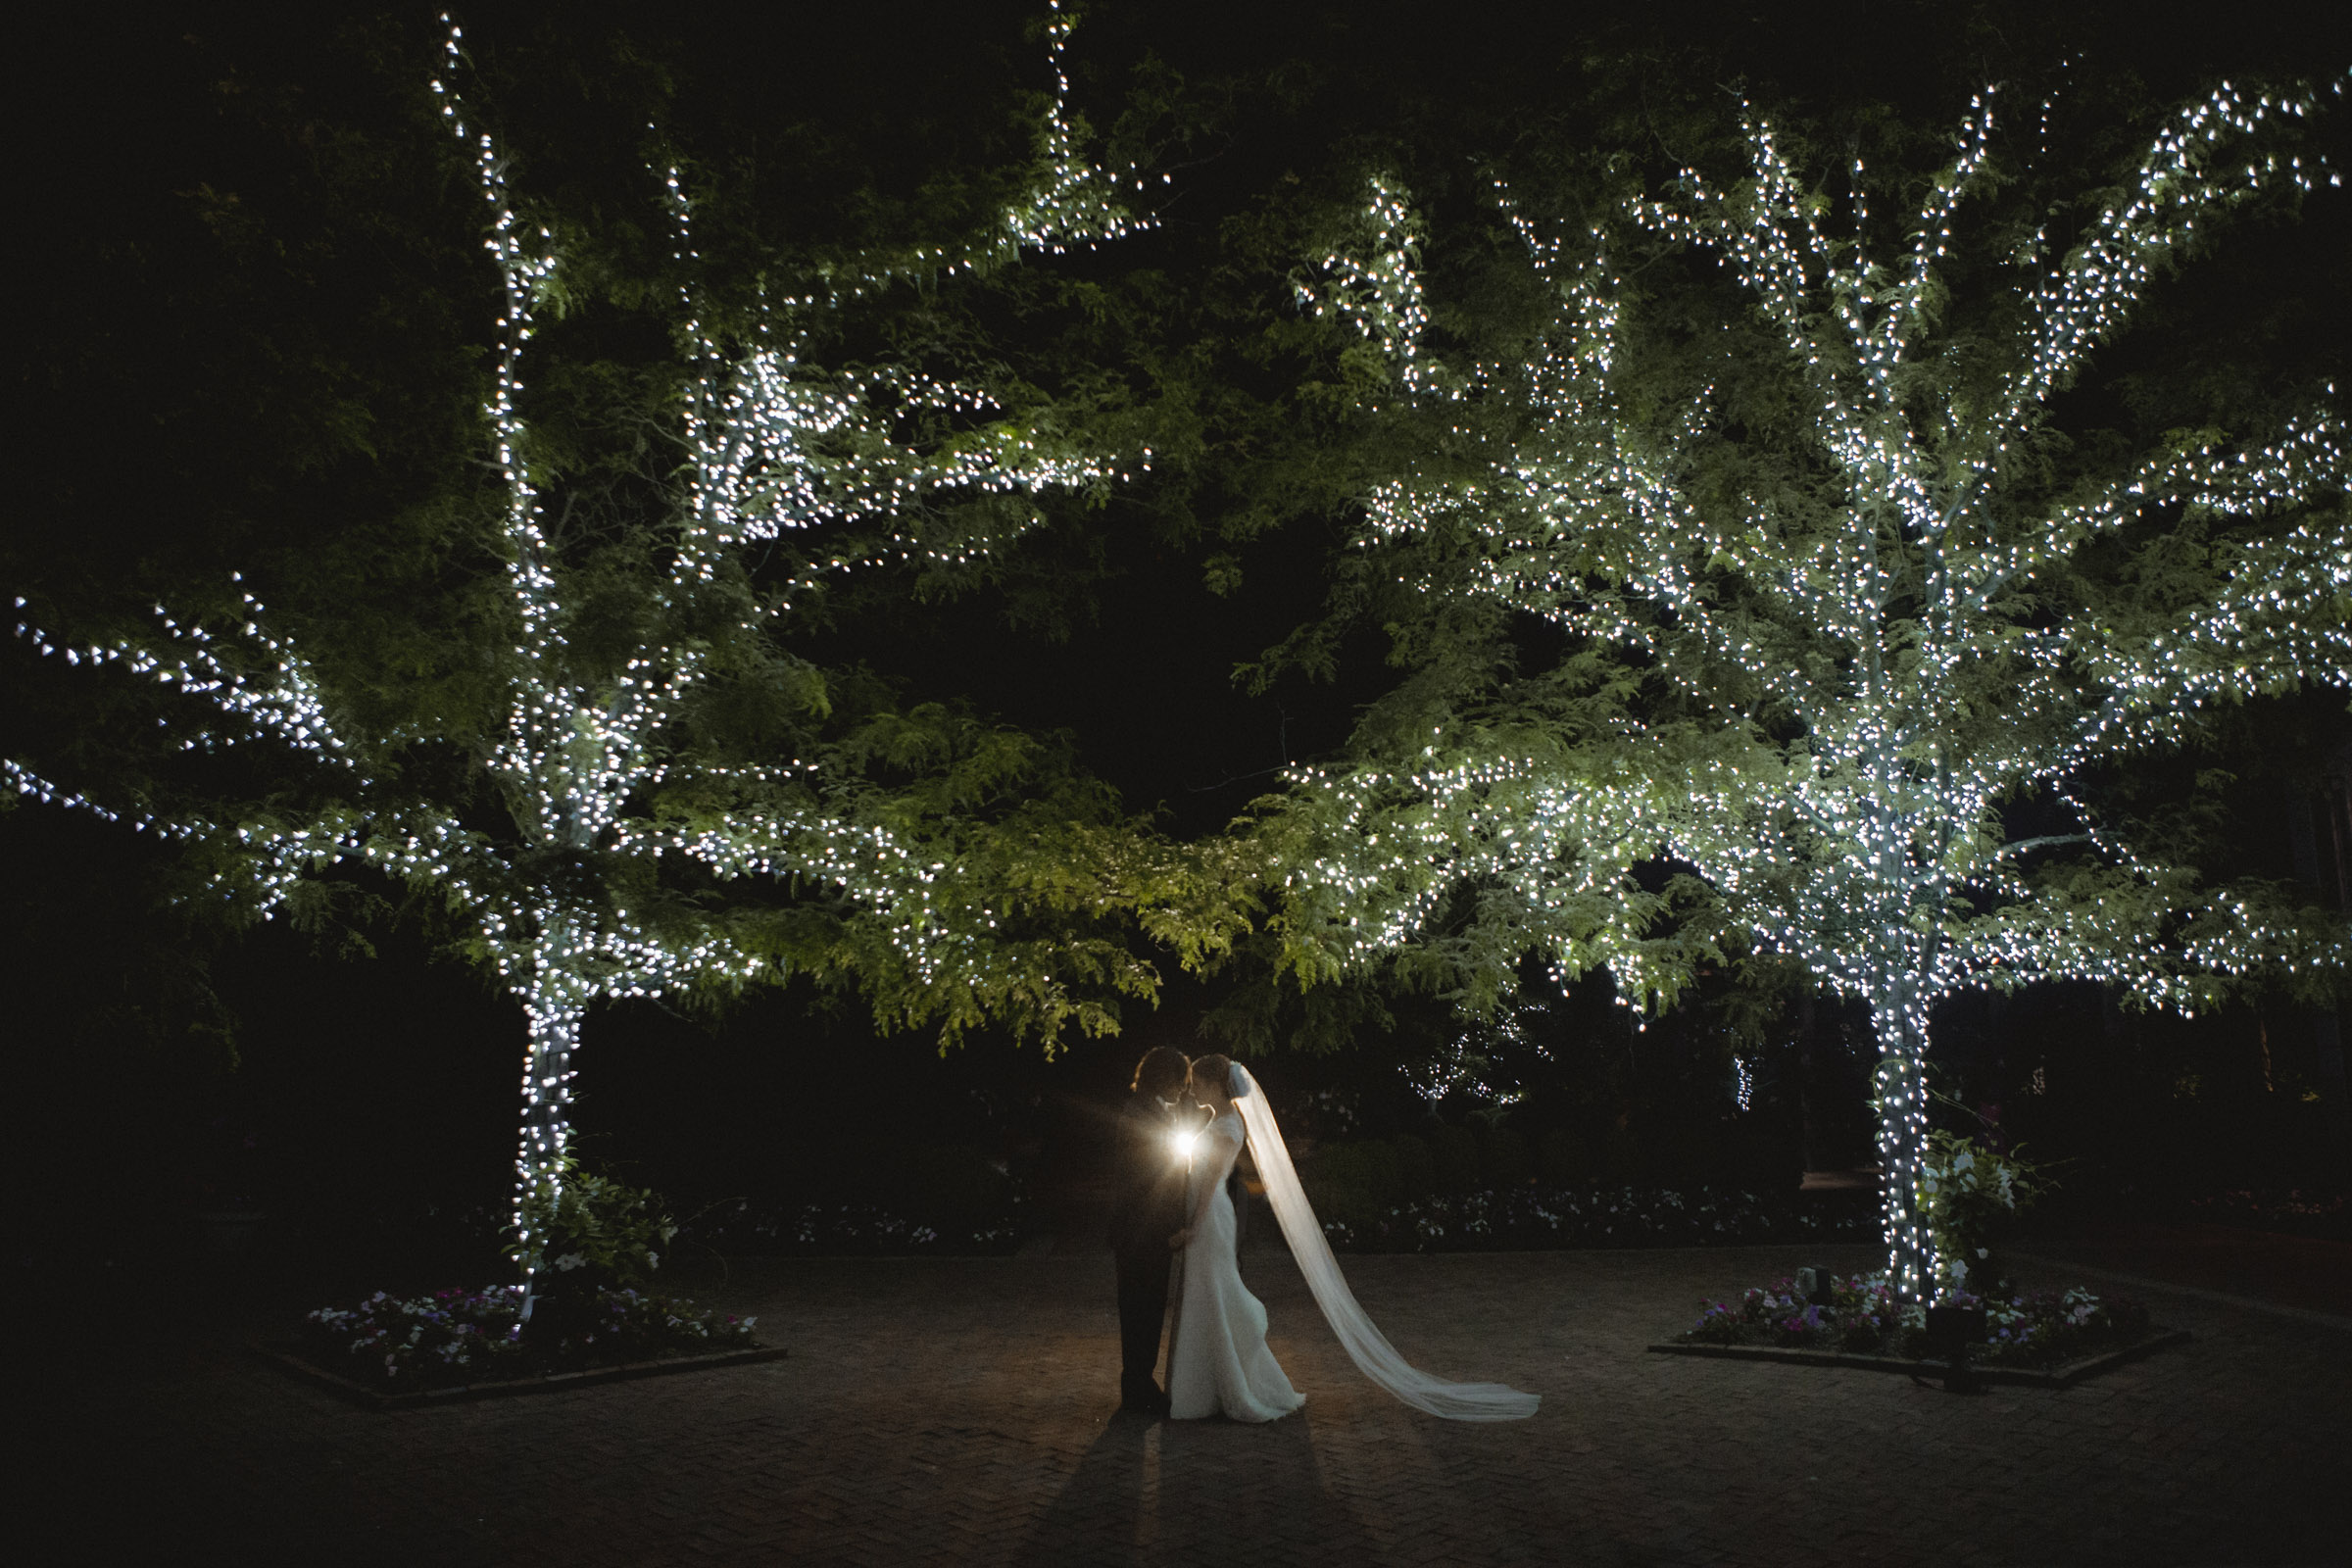 Couple stands under trees lit with twinkle lights - Estate at Florentine Gardens wedding - Hudson Valley Wedding - Kelsey & Anish's wedding - Amy Sims Photography